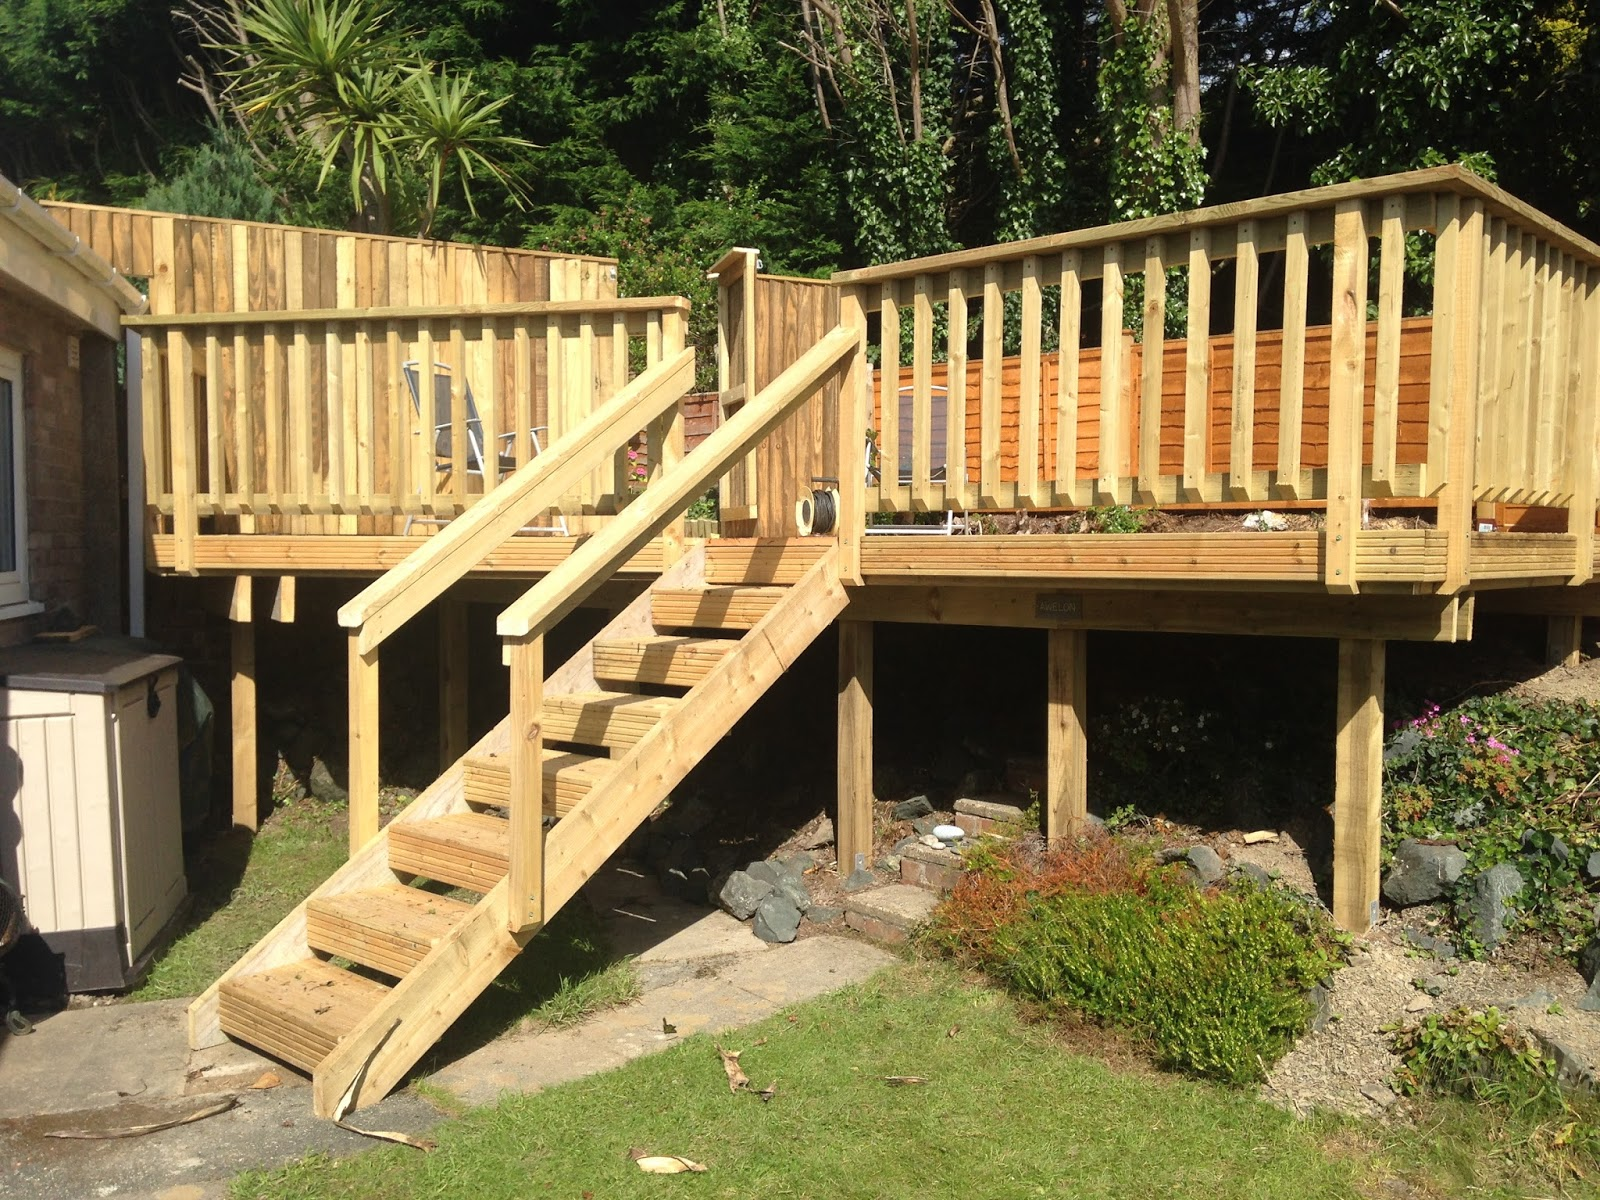 Garden carpentry timber decking design and build our for Garden decking designs pictures